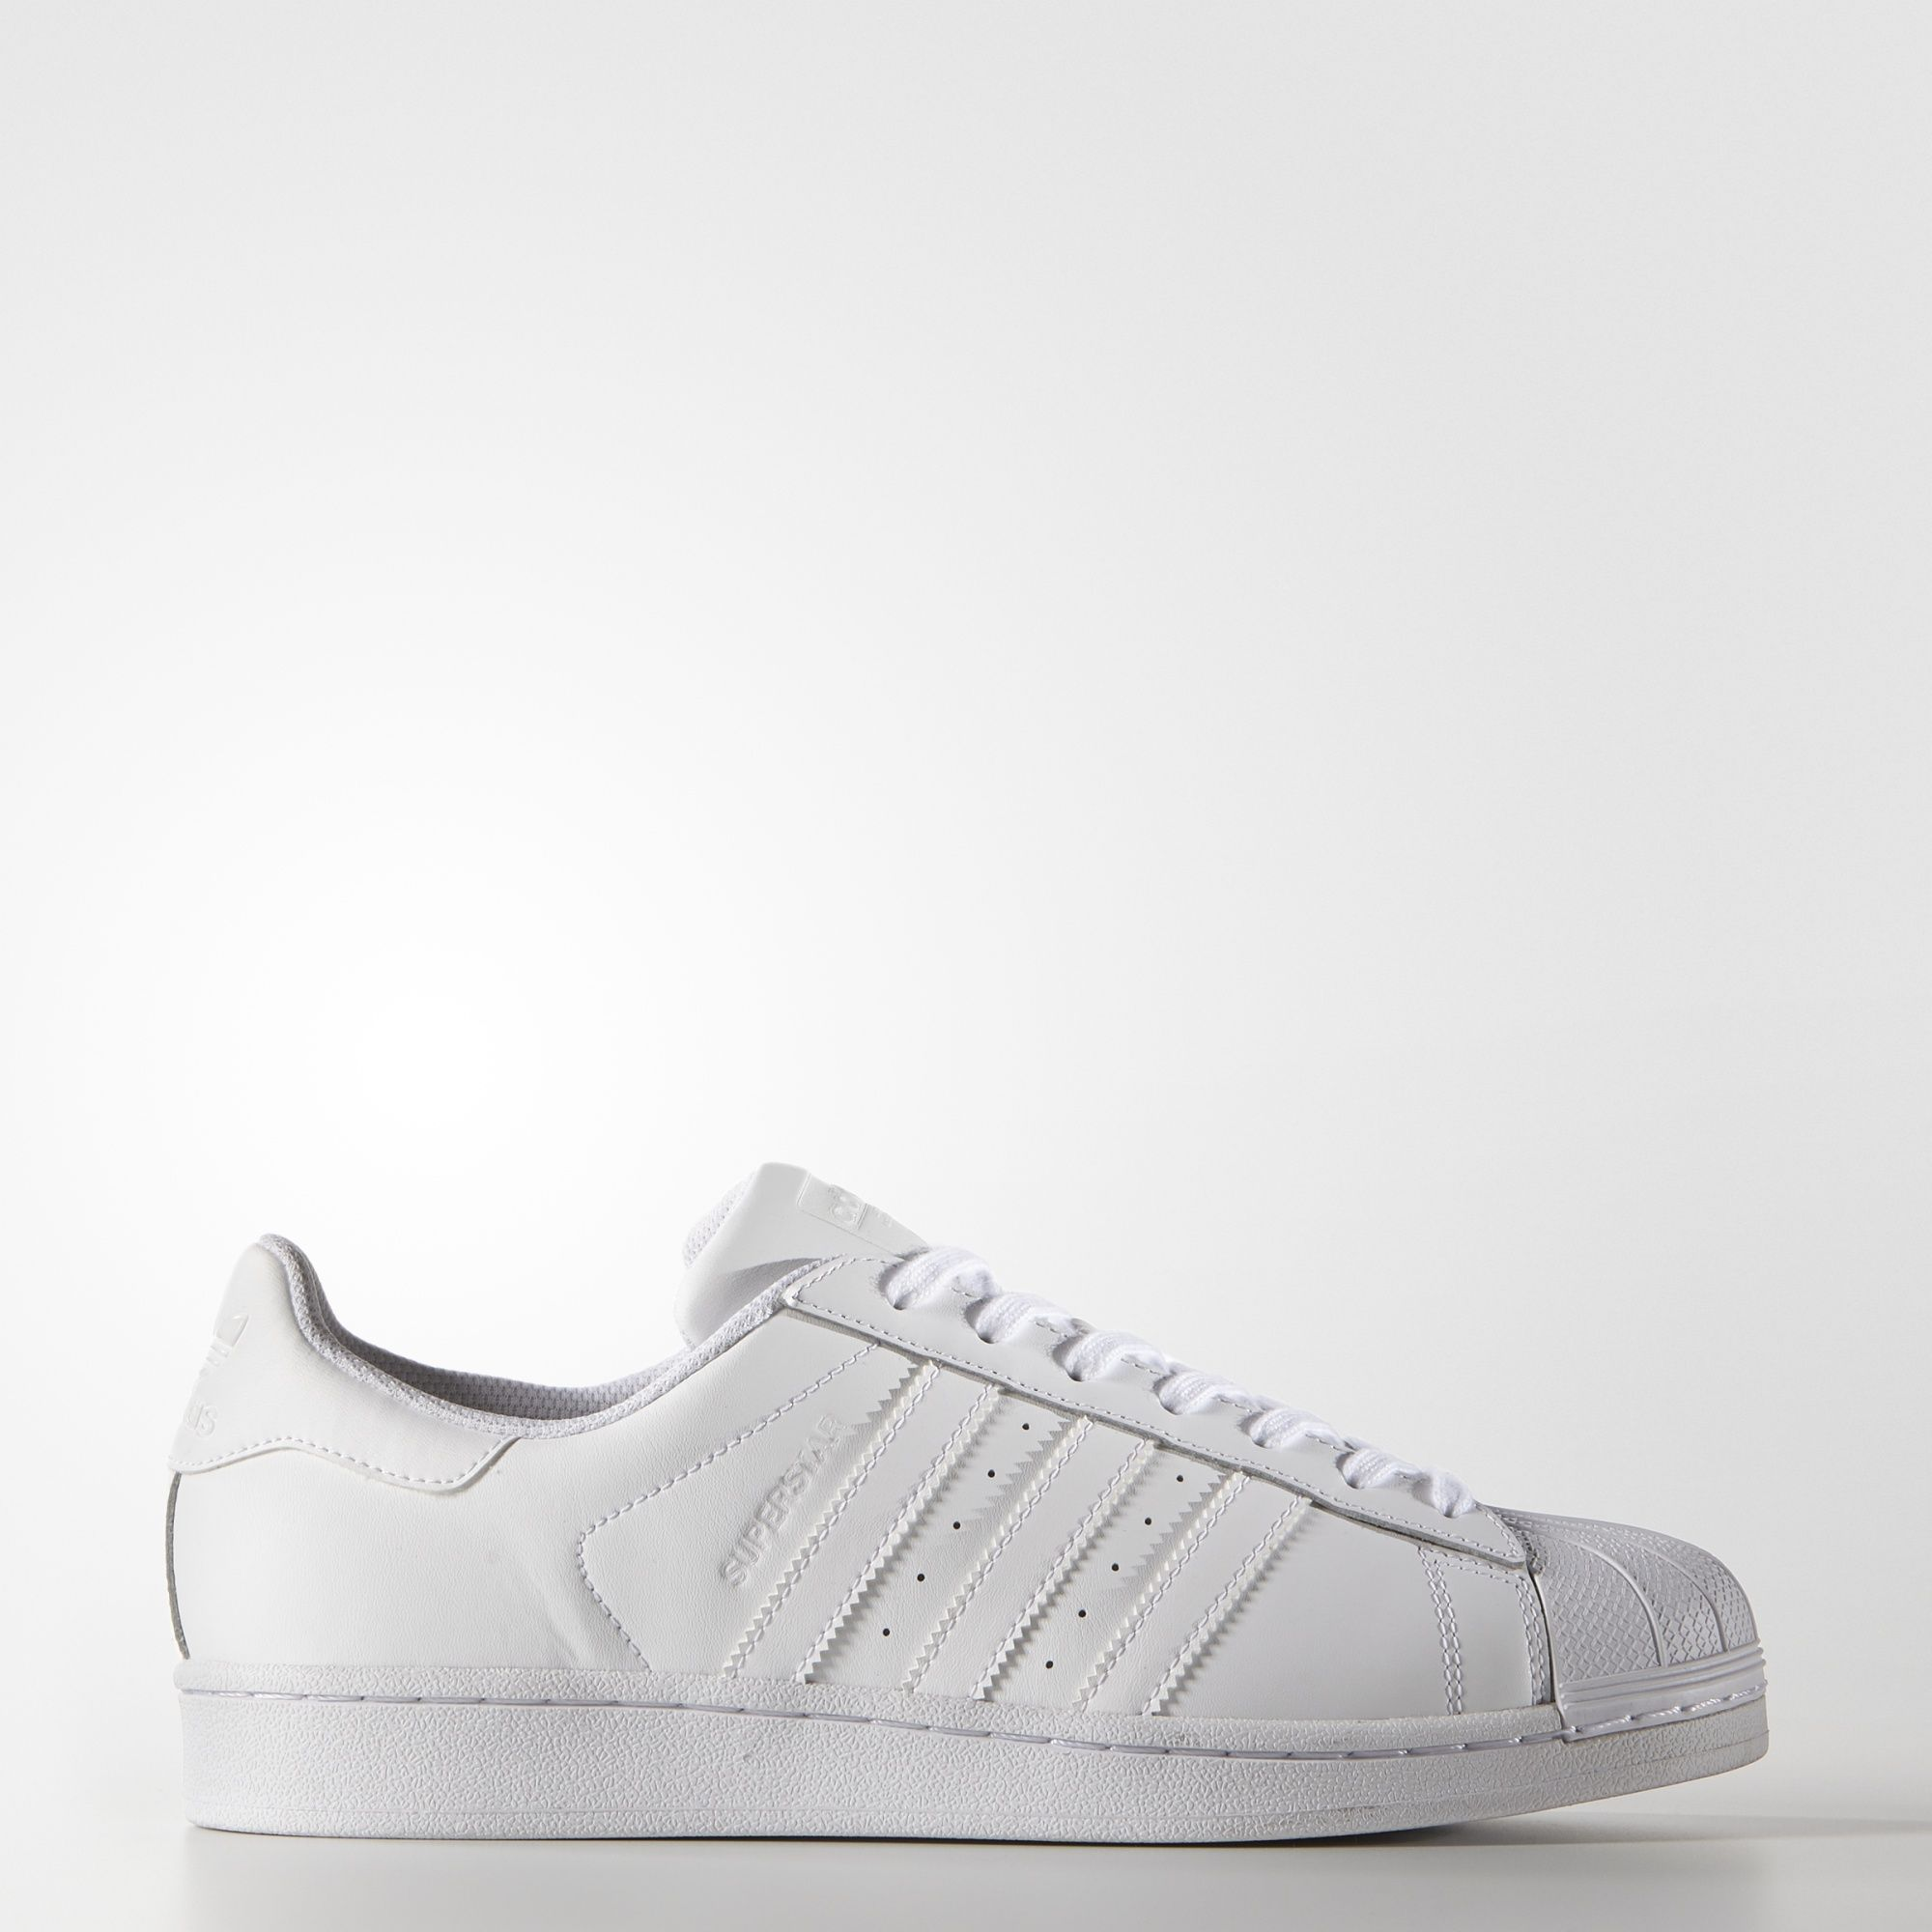 adidas superstar 2 shoes 1969 chevelle ss